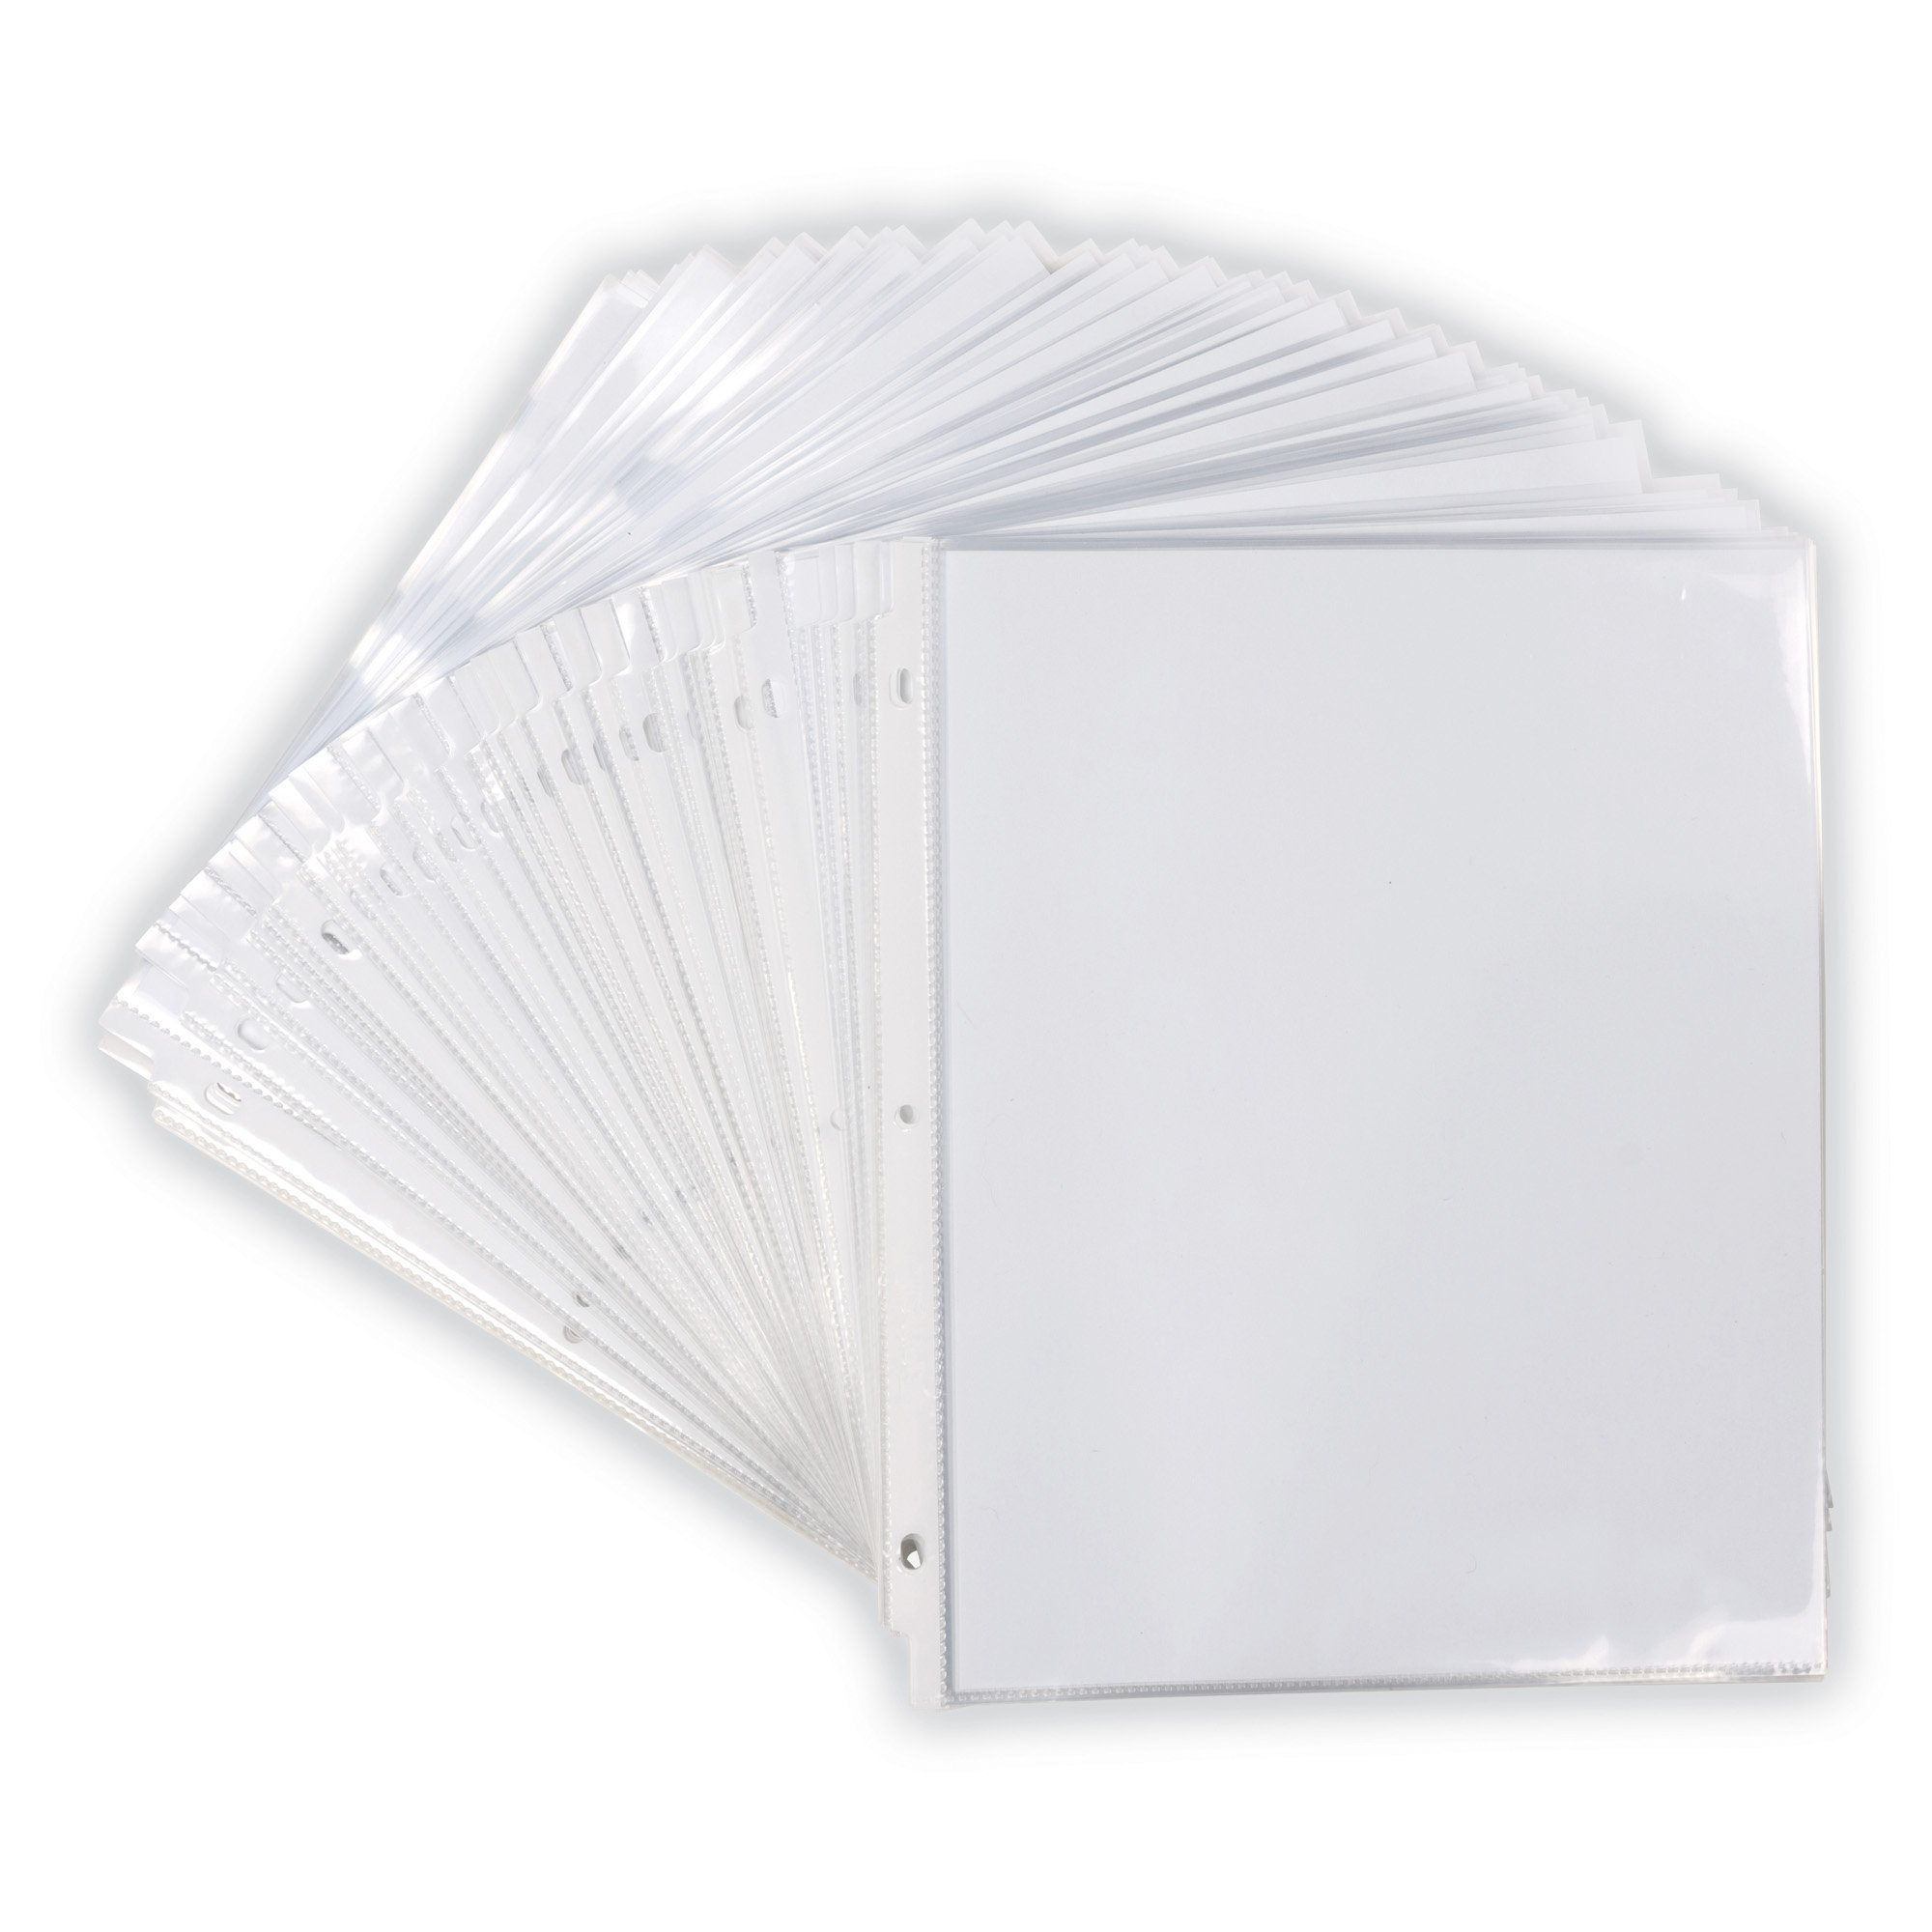 Samsill Heavyweight Clear Sheet Protectors, Box of 200 Plastic Page Protectors, Acid Free/Archival Safe, Top Load 8.5 x 11 inches by Samsill (Image #5)